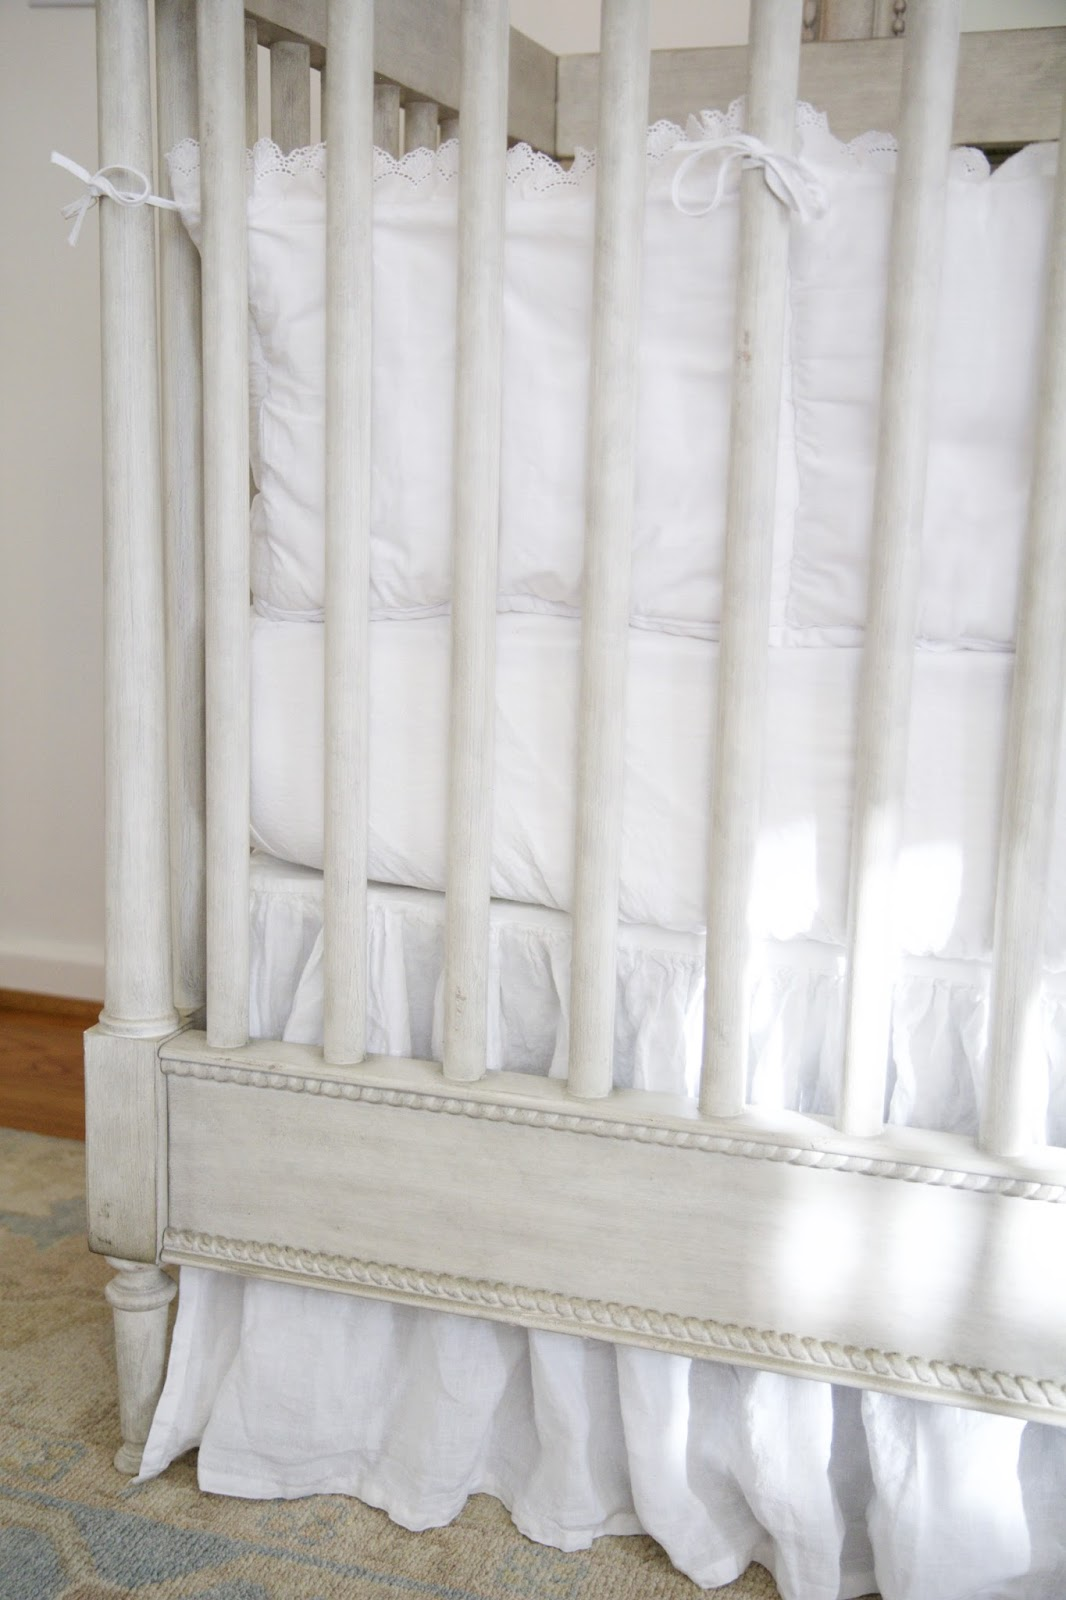 Crib Sheets And Skirt By Restoration Hardware; Baby Tools In The Nest;  Nora's Nest